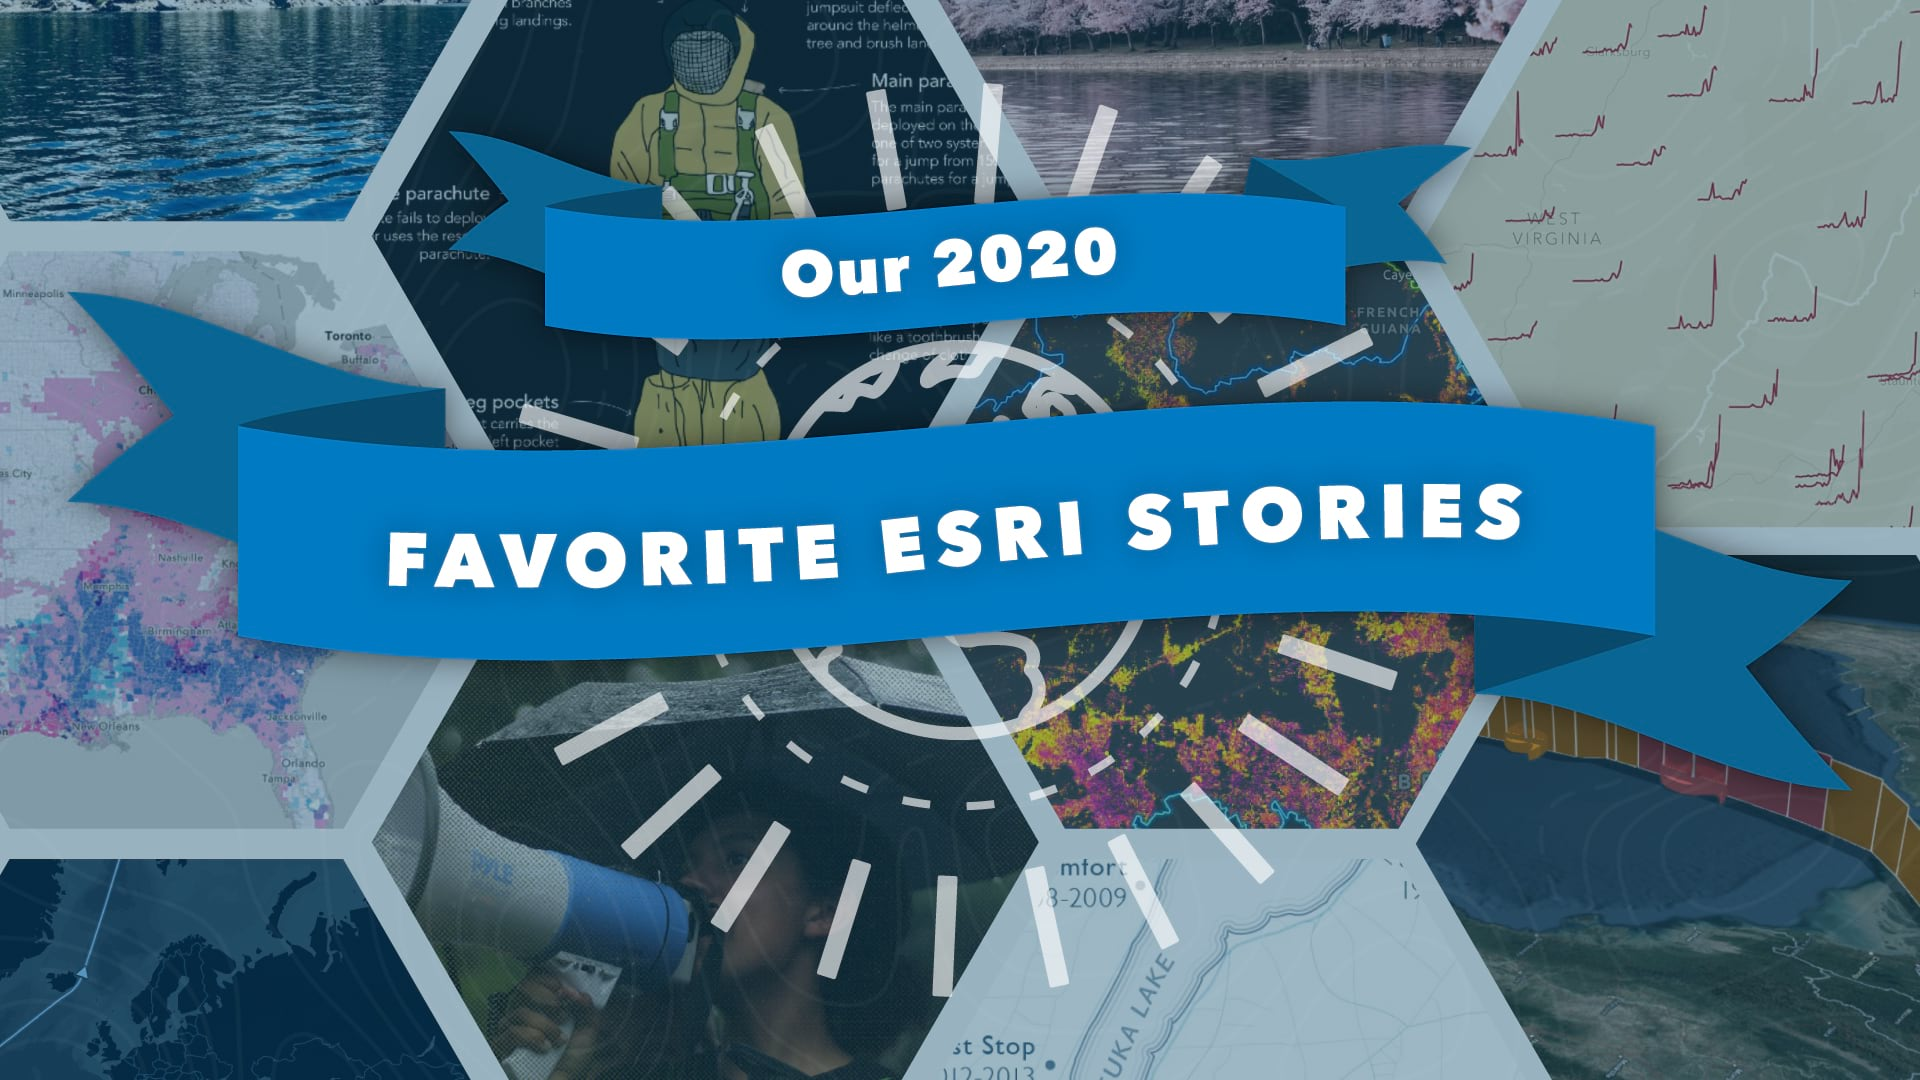 A clickable graphic that links to a collection of outstanding stories published by Esri employees.